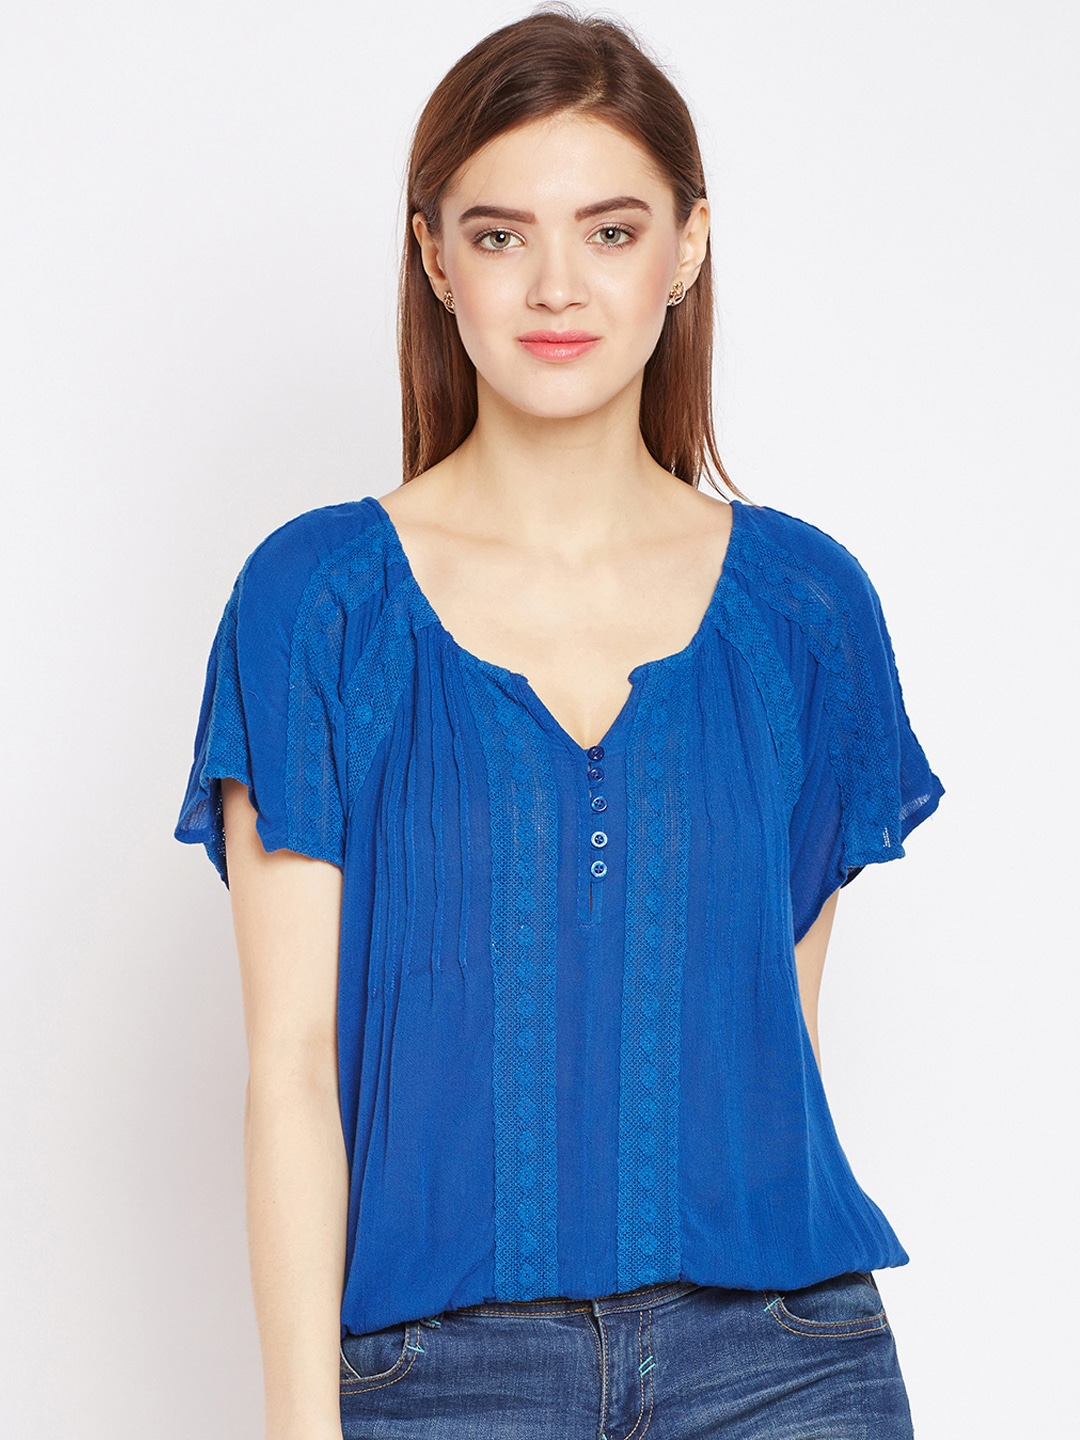 33fc1019164f1 Chiffon Tops - Buy Chiffon Tops for Women Online